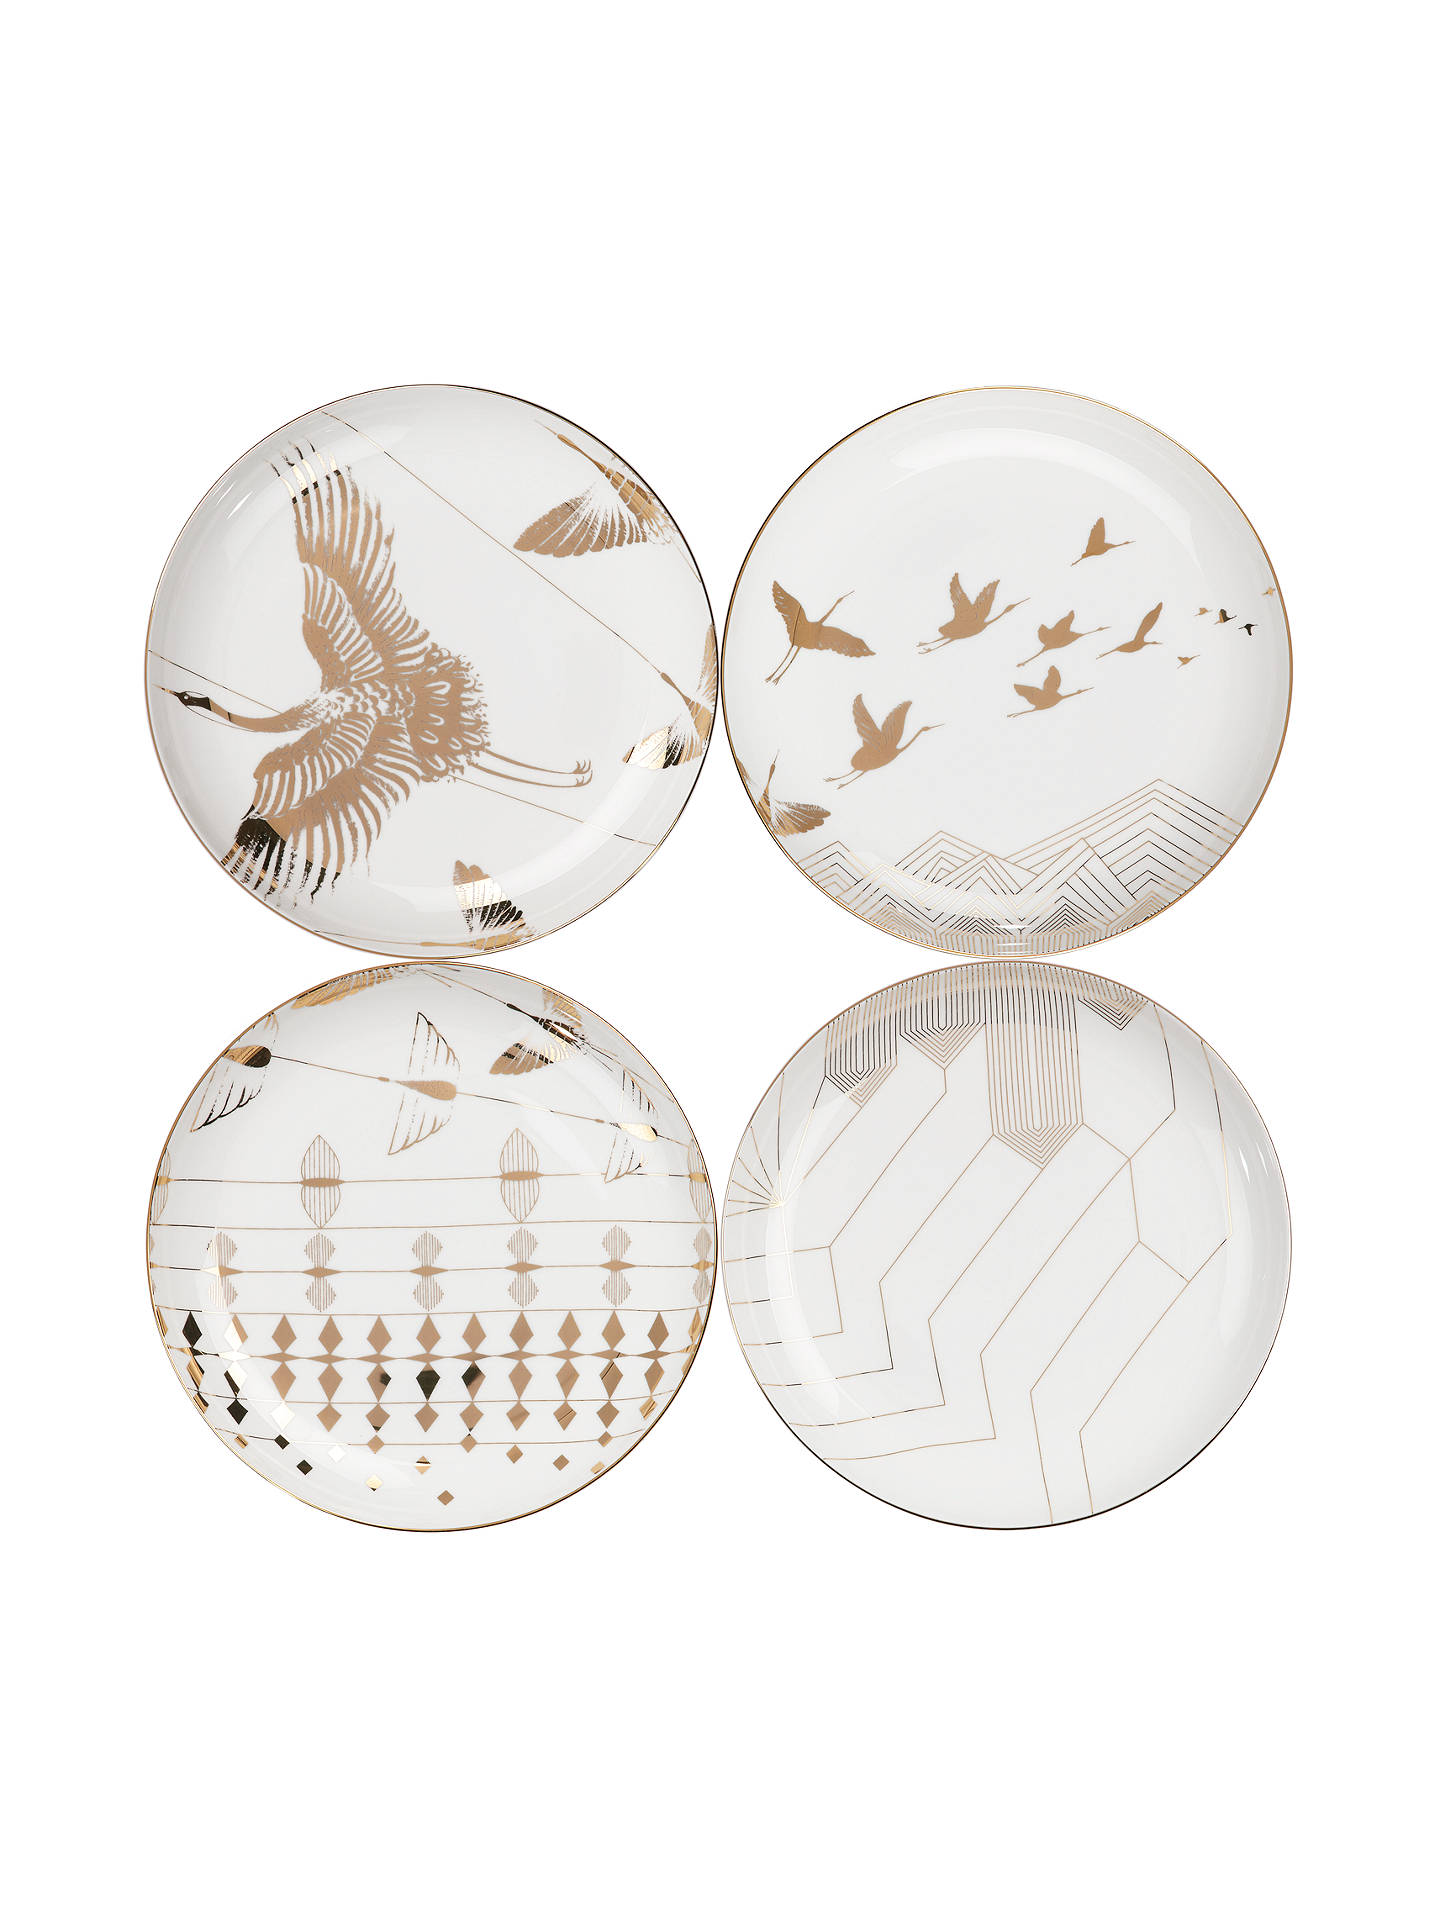 BuyV&A and John Lewis Yama Side Plates, White/Gold, Dia.21cm, Set of 4 Online at johnlewis.com